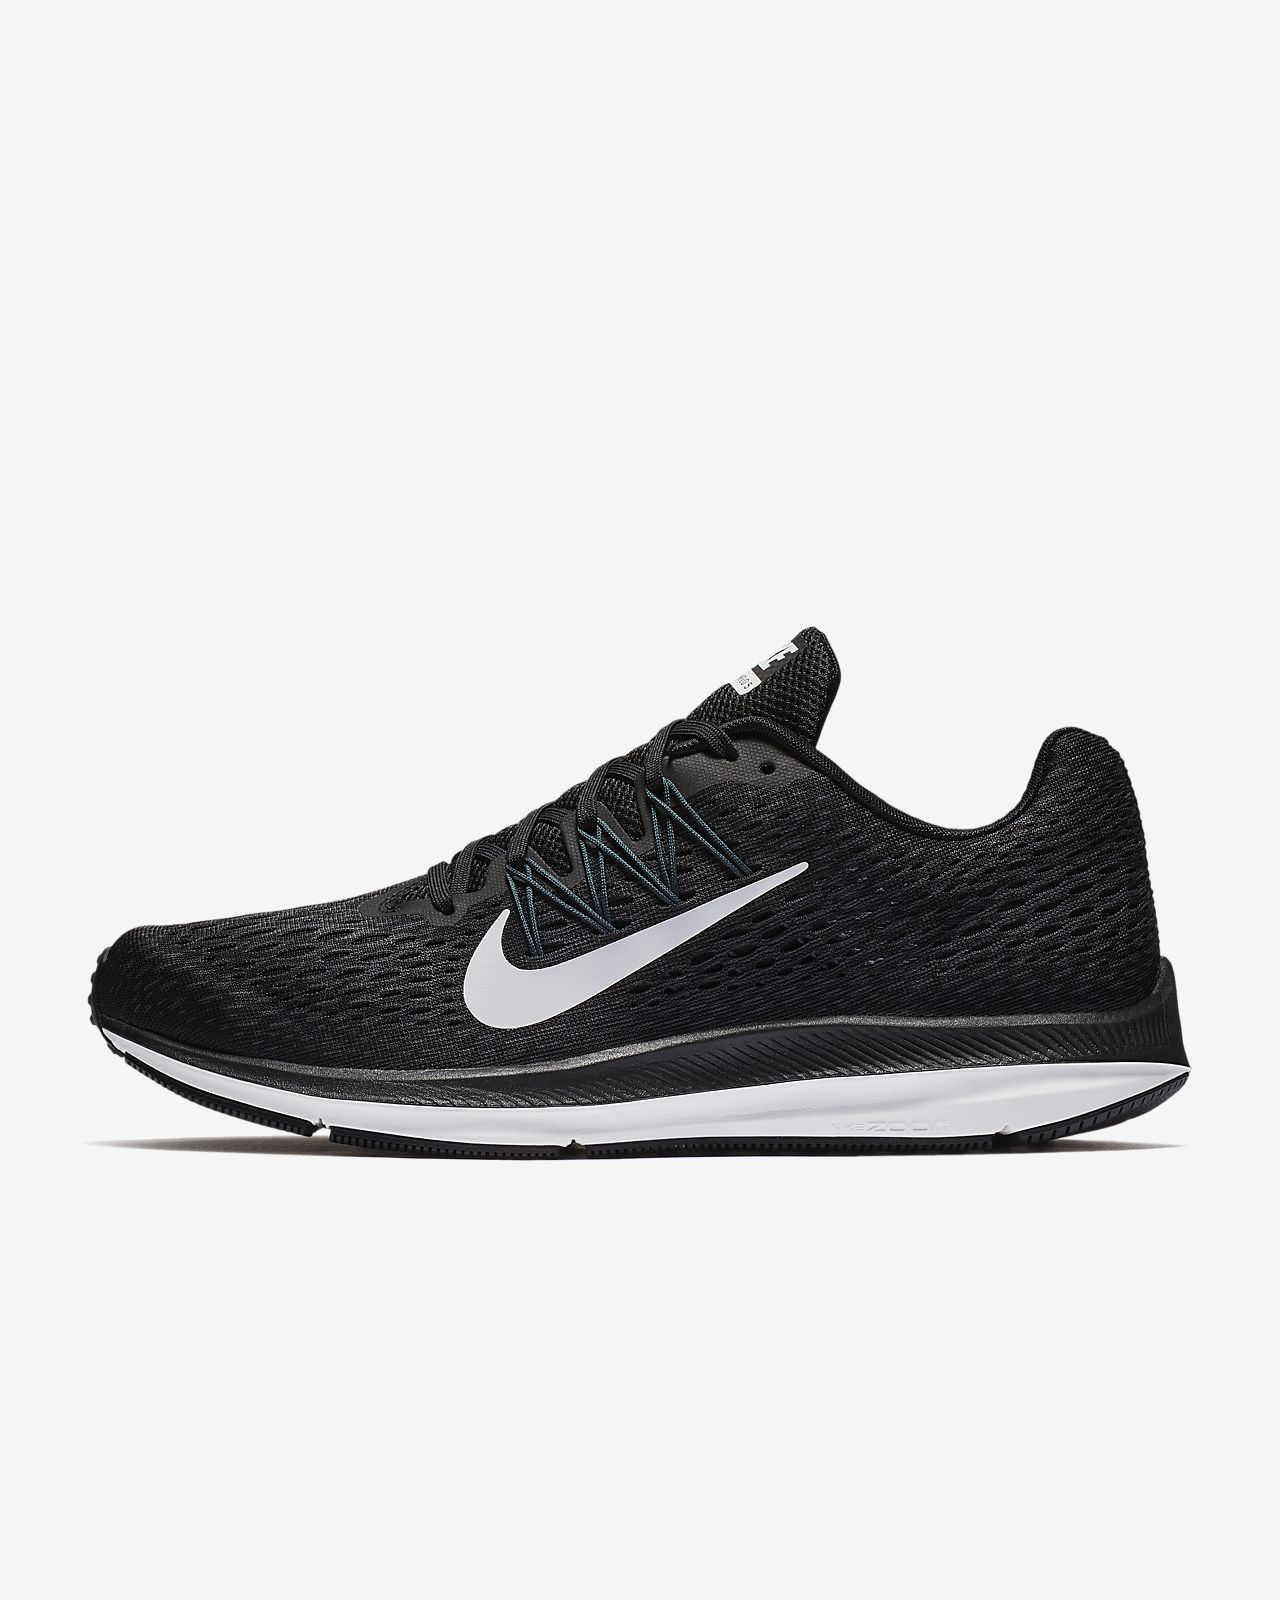 Nike Air Zoom Winflo 5 Men s Running Shoe. Nike.com CA 27decb1d62a36